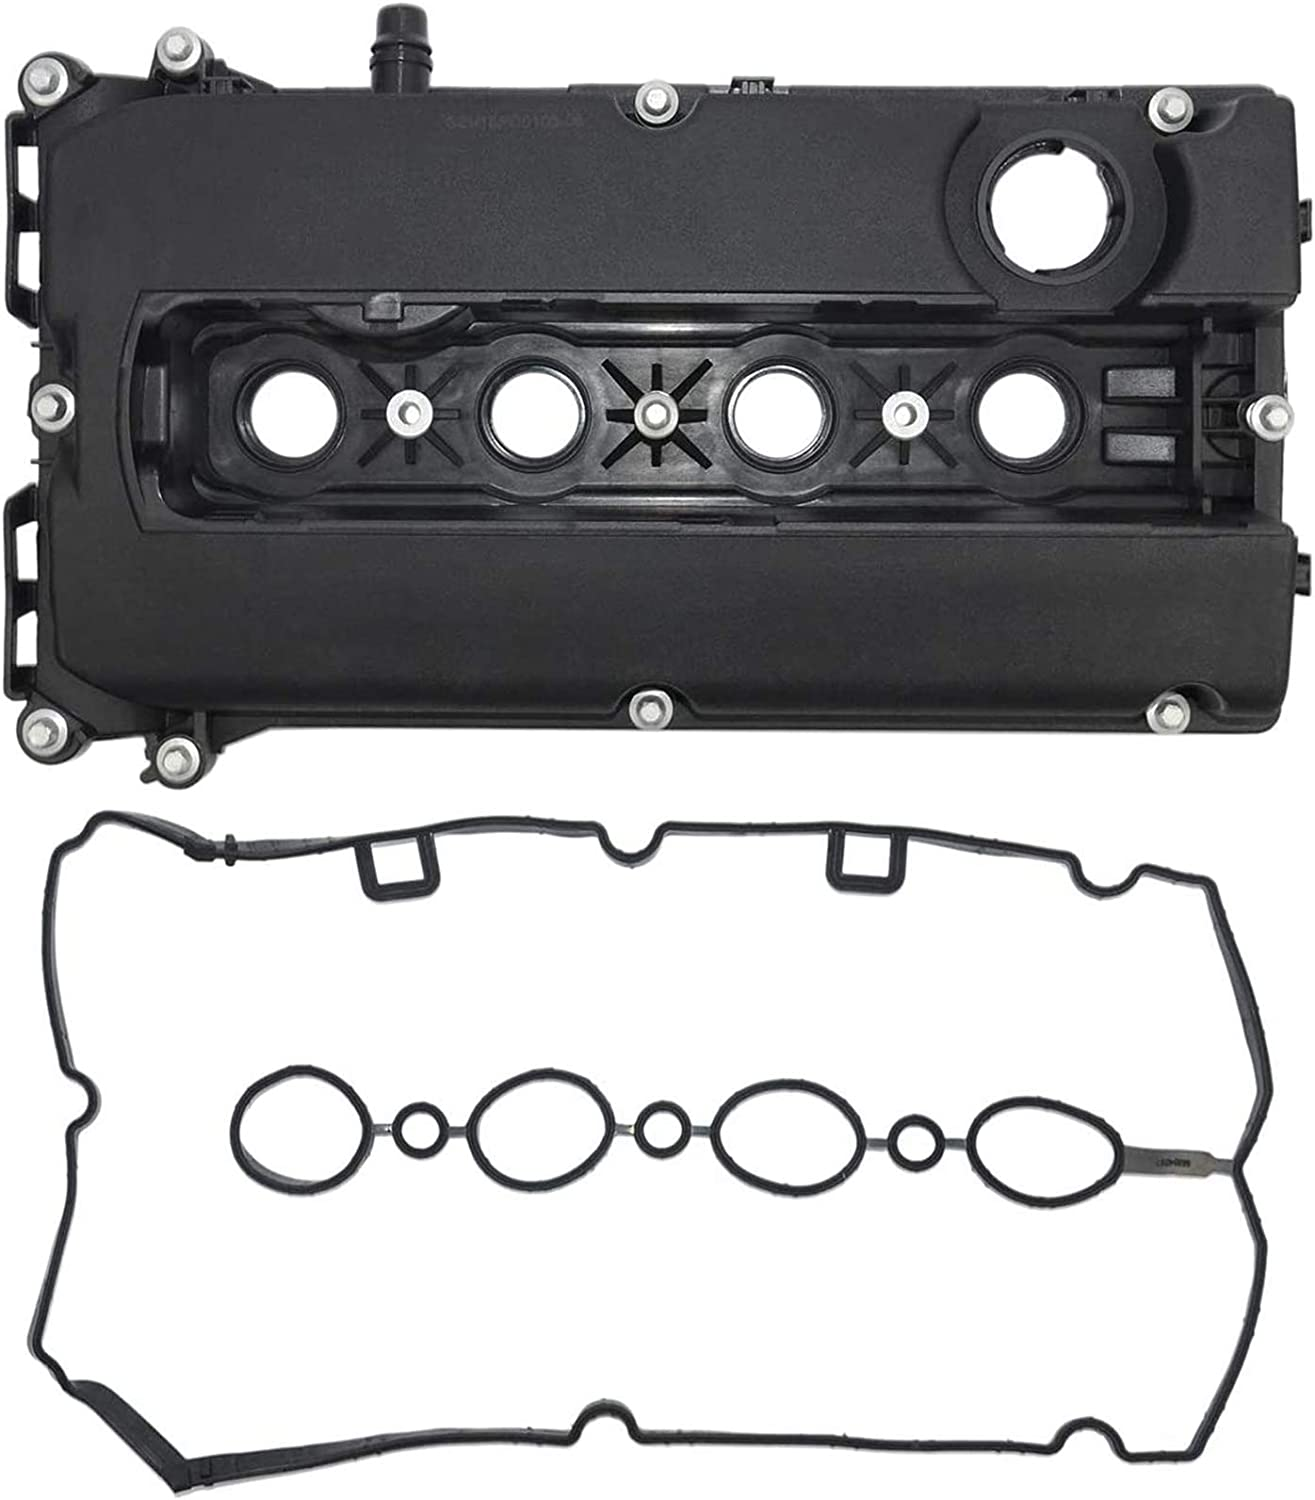 Part# 55558673 Camshaft Valve Cover with Gasket for Chevy 11-15 Cruze 12-15 Sonic 09-11 Aveo Aveo5 09-10 Pontiac G3 2008 Saturn Astra 55564395